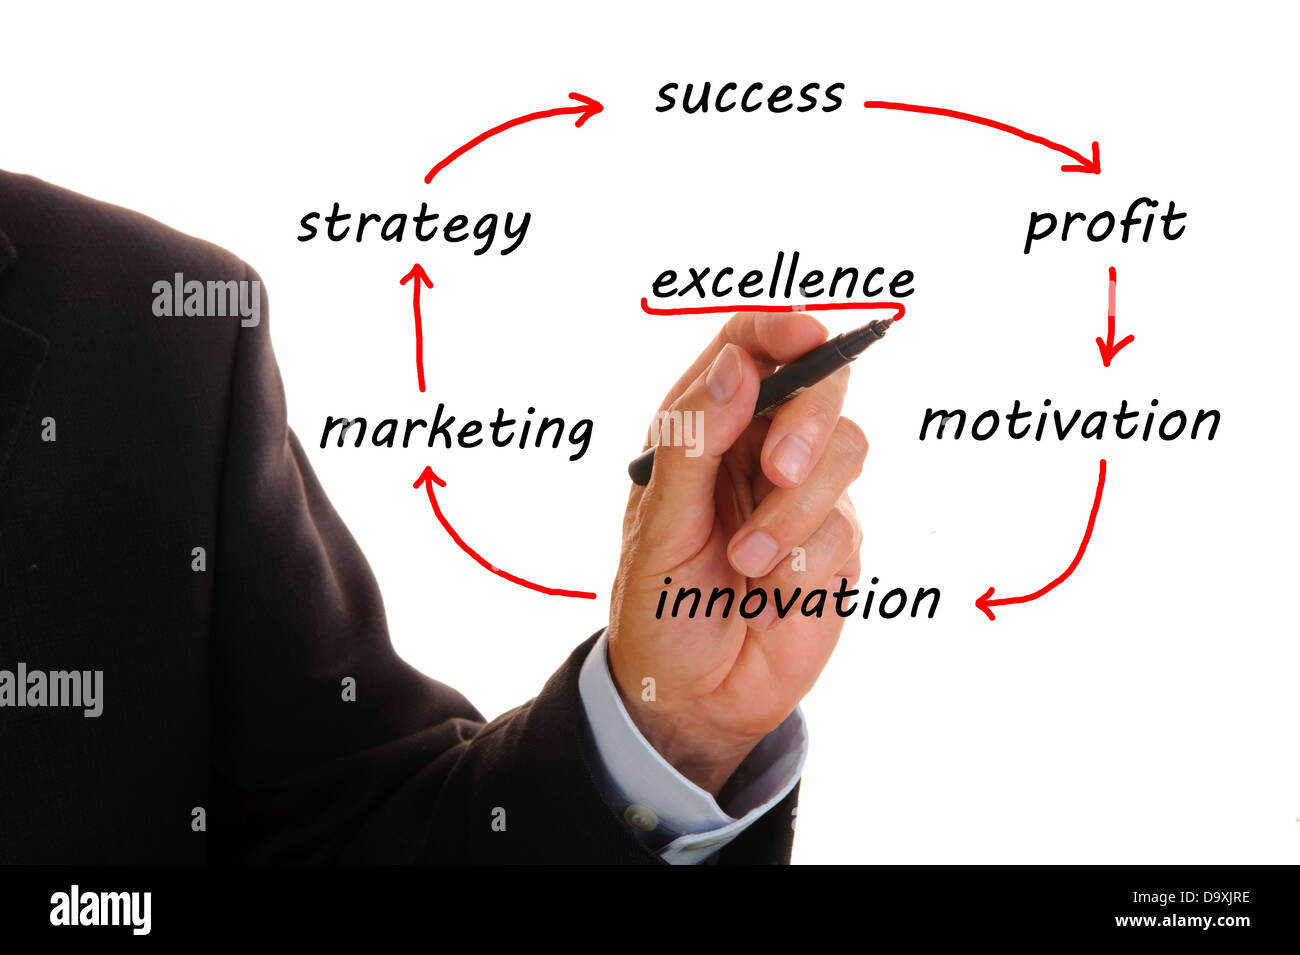 a successful marketing strategy Marketing strategy is the section of your business plan that outlines your overall game plan for finding clients and customers for your business sometimes marketing strategy is confused with a marketing plan, but they are different.